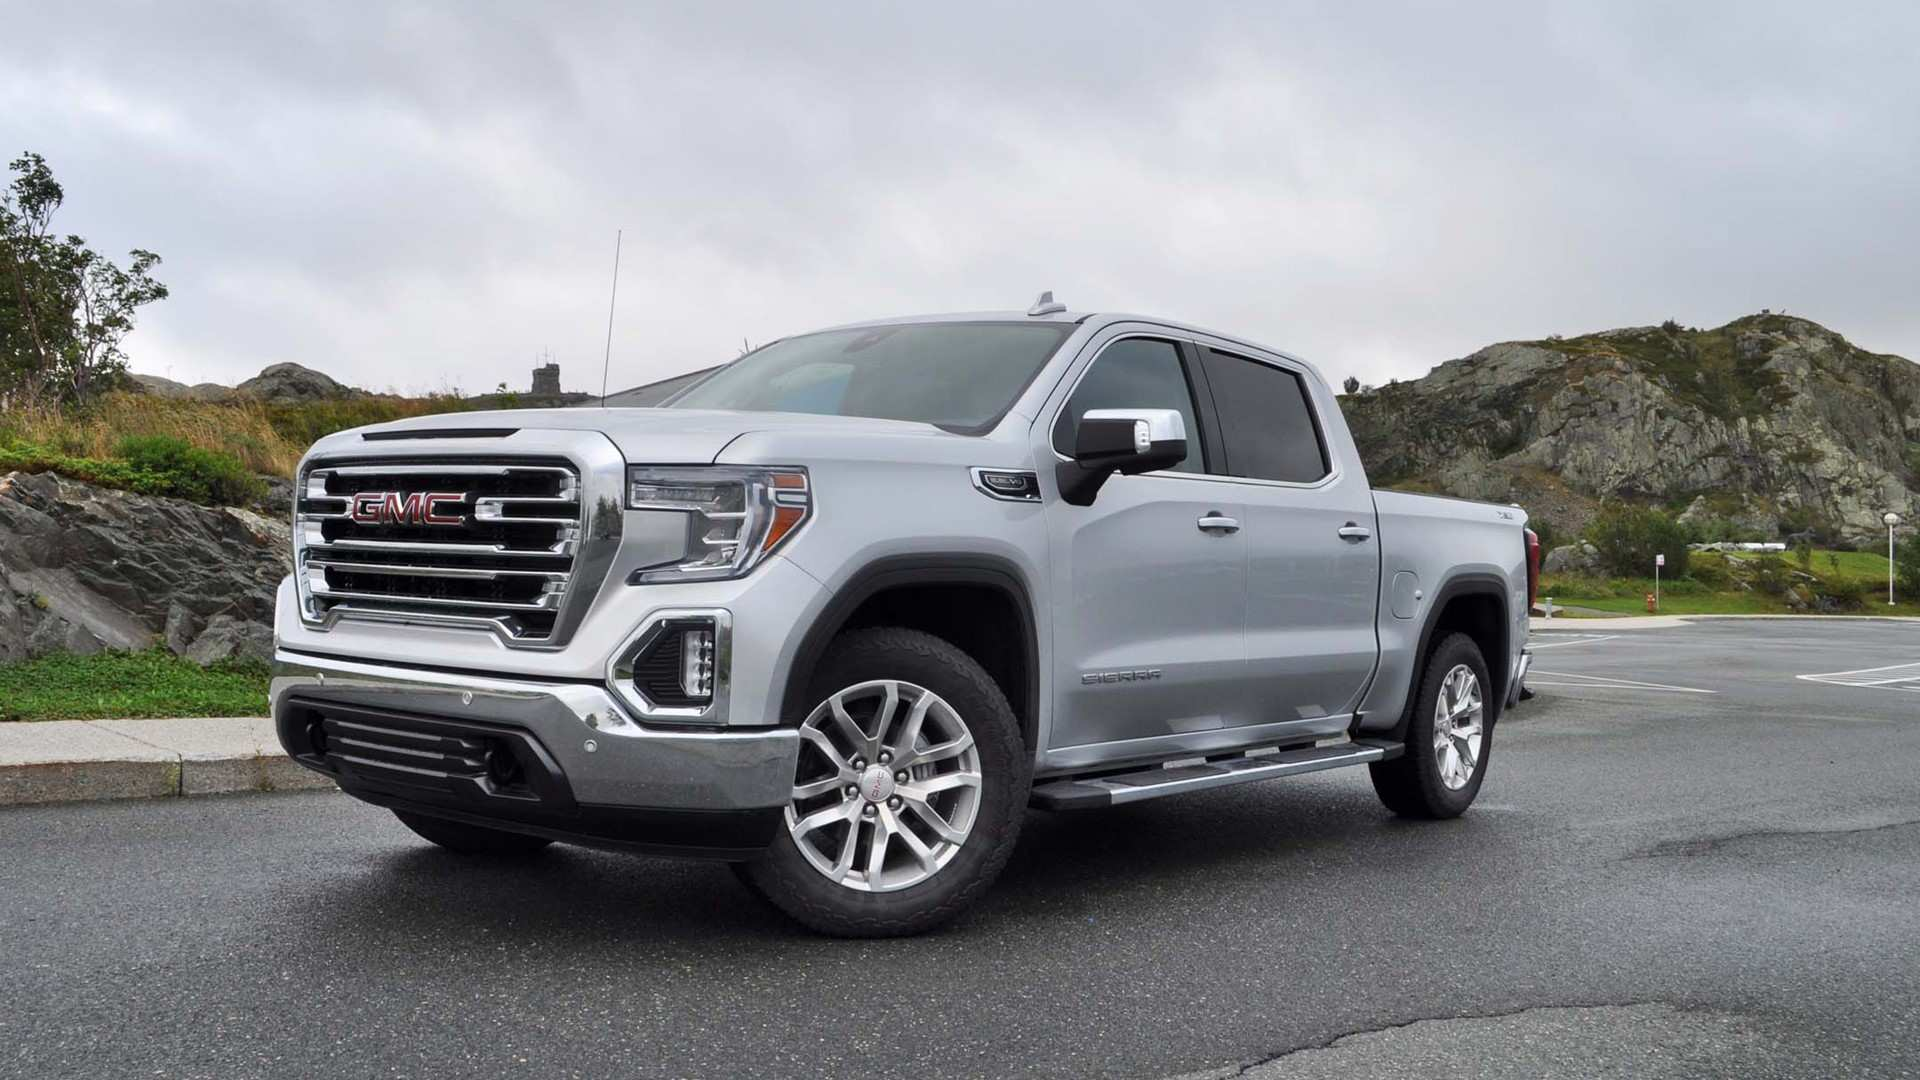 86 The New Gmc 2019 Sierra 1500 First Drive Pictures for New Gmc 2019 Sierra 1500 First Drive